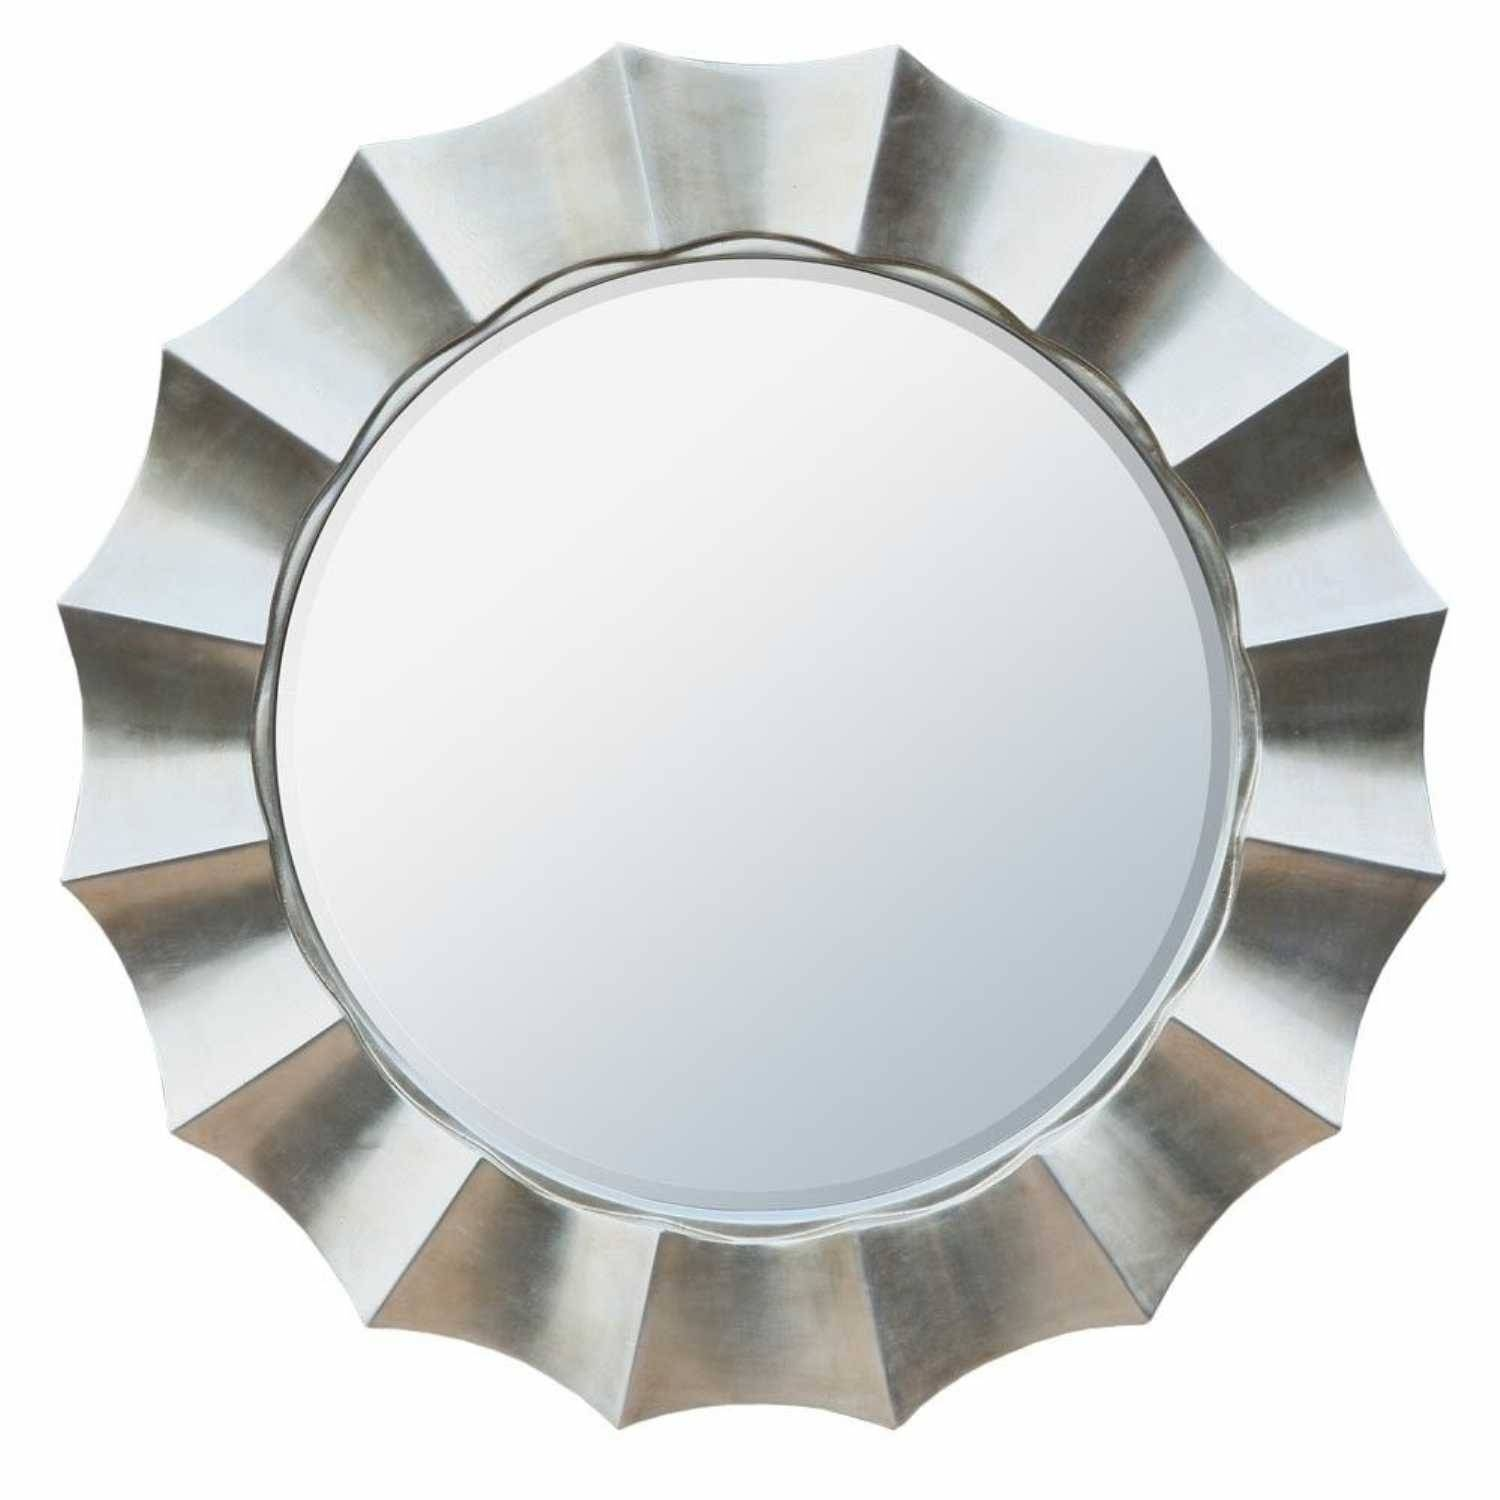 Retro Funky Large Decorative Round Silver Sunburst Wall Mirror regarding Funky Wall Mirrors (Image 12 of 15)